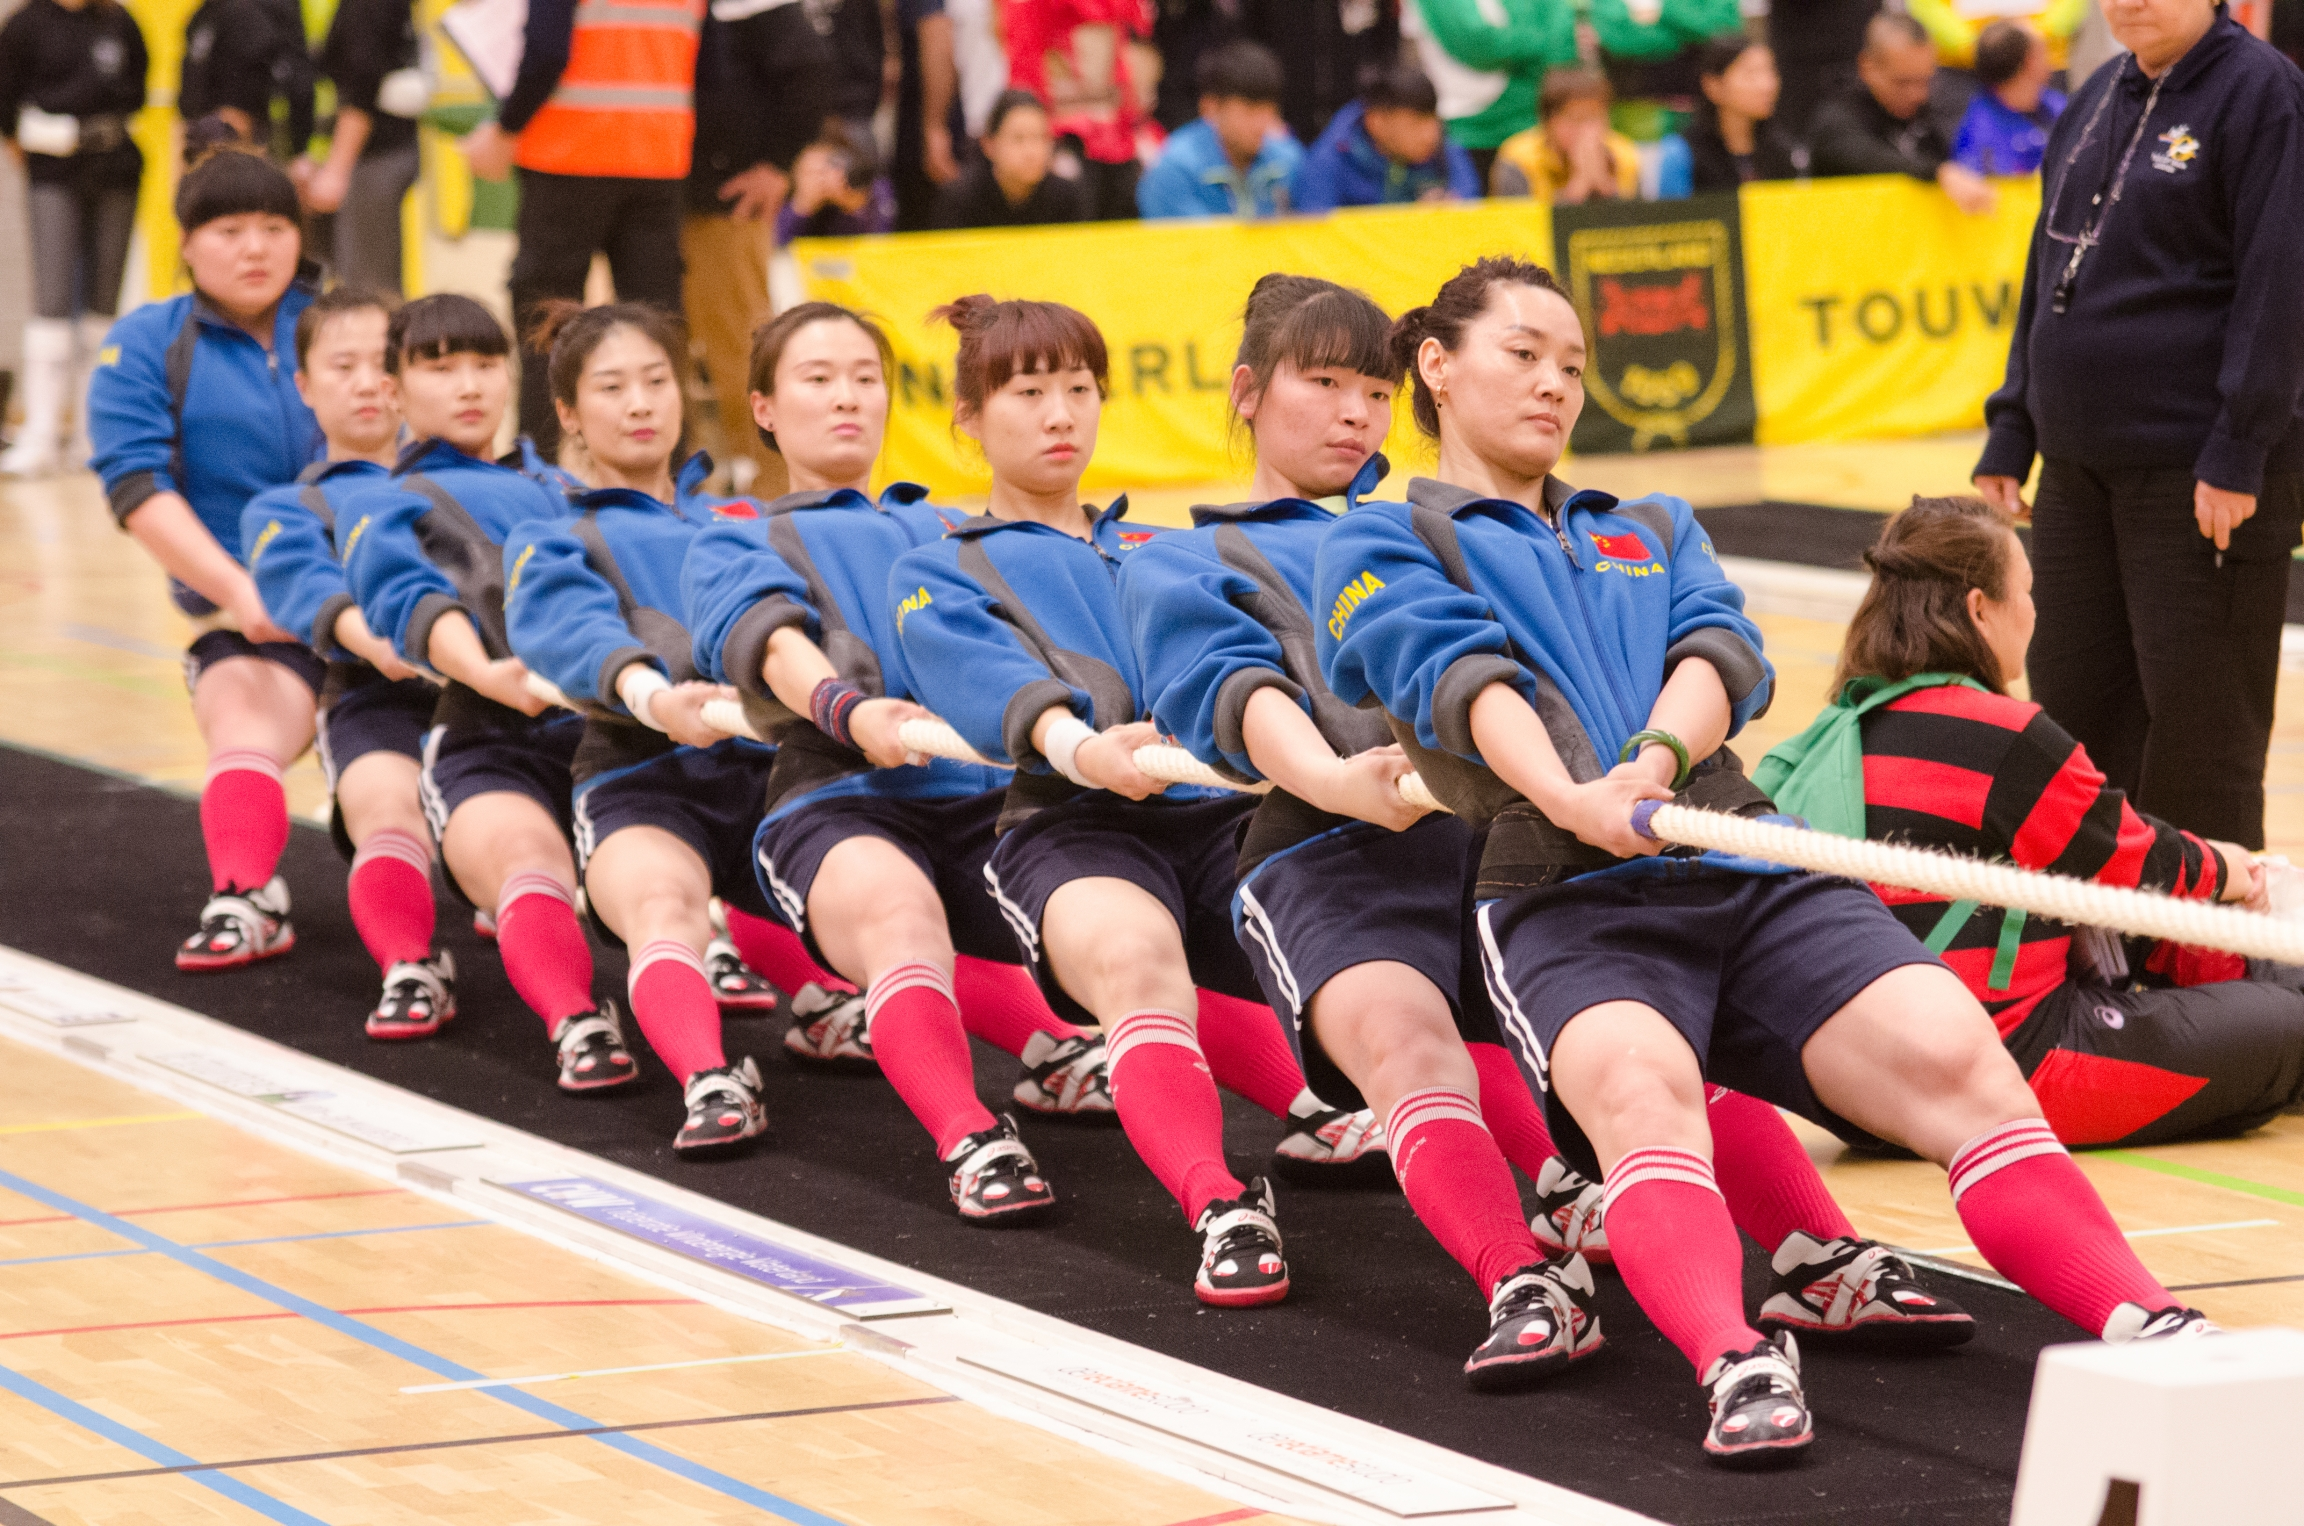 A team of women from China compete in a tug of war competition.